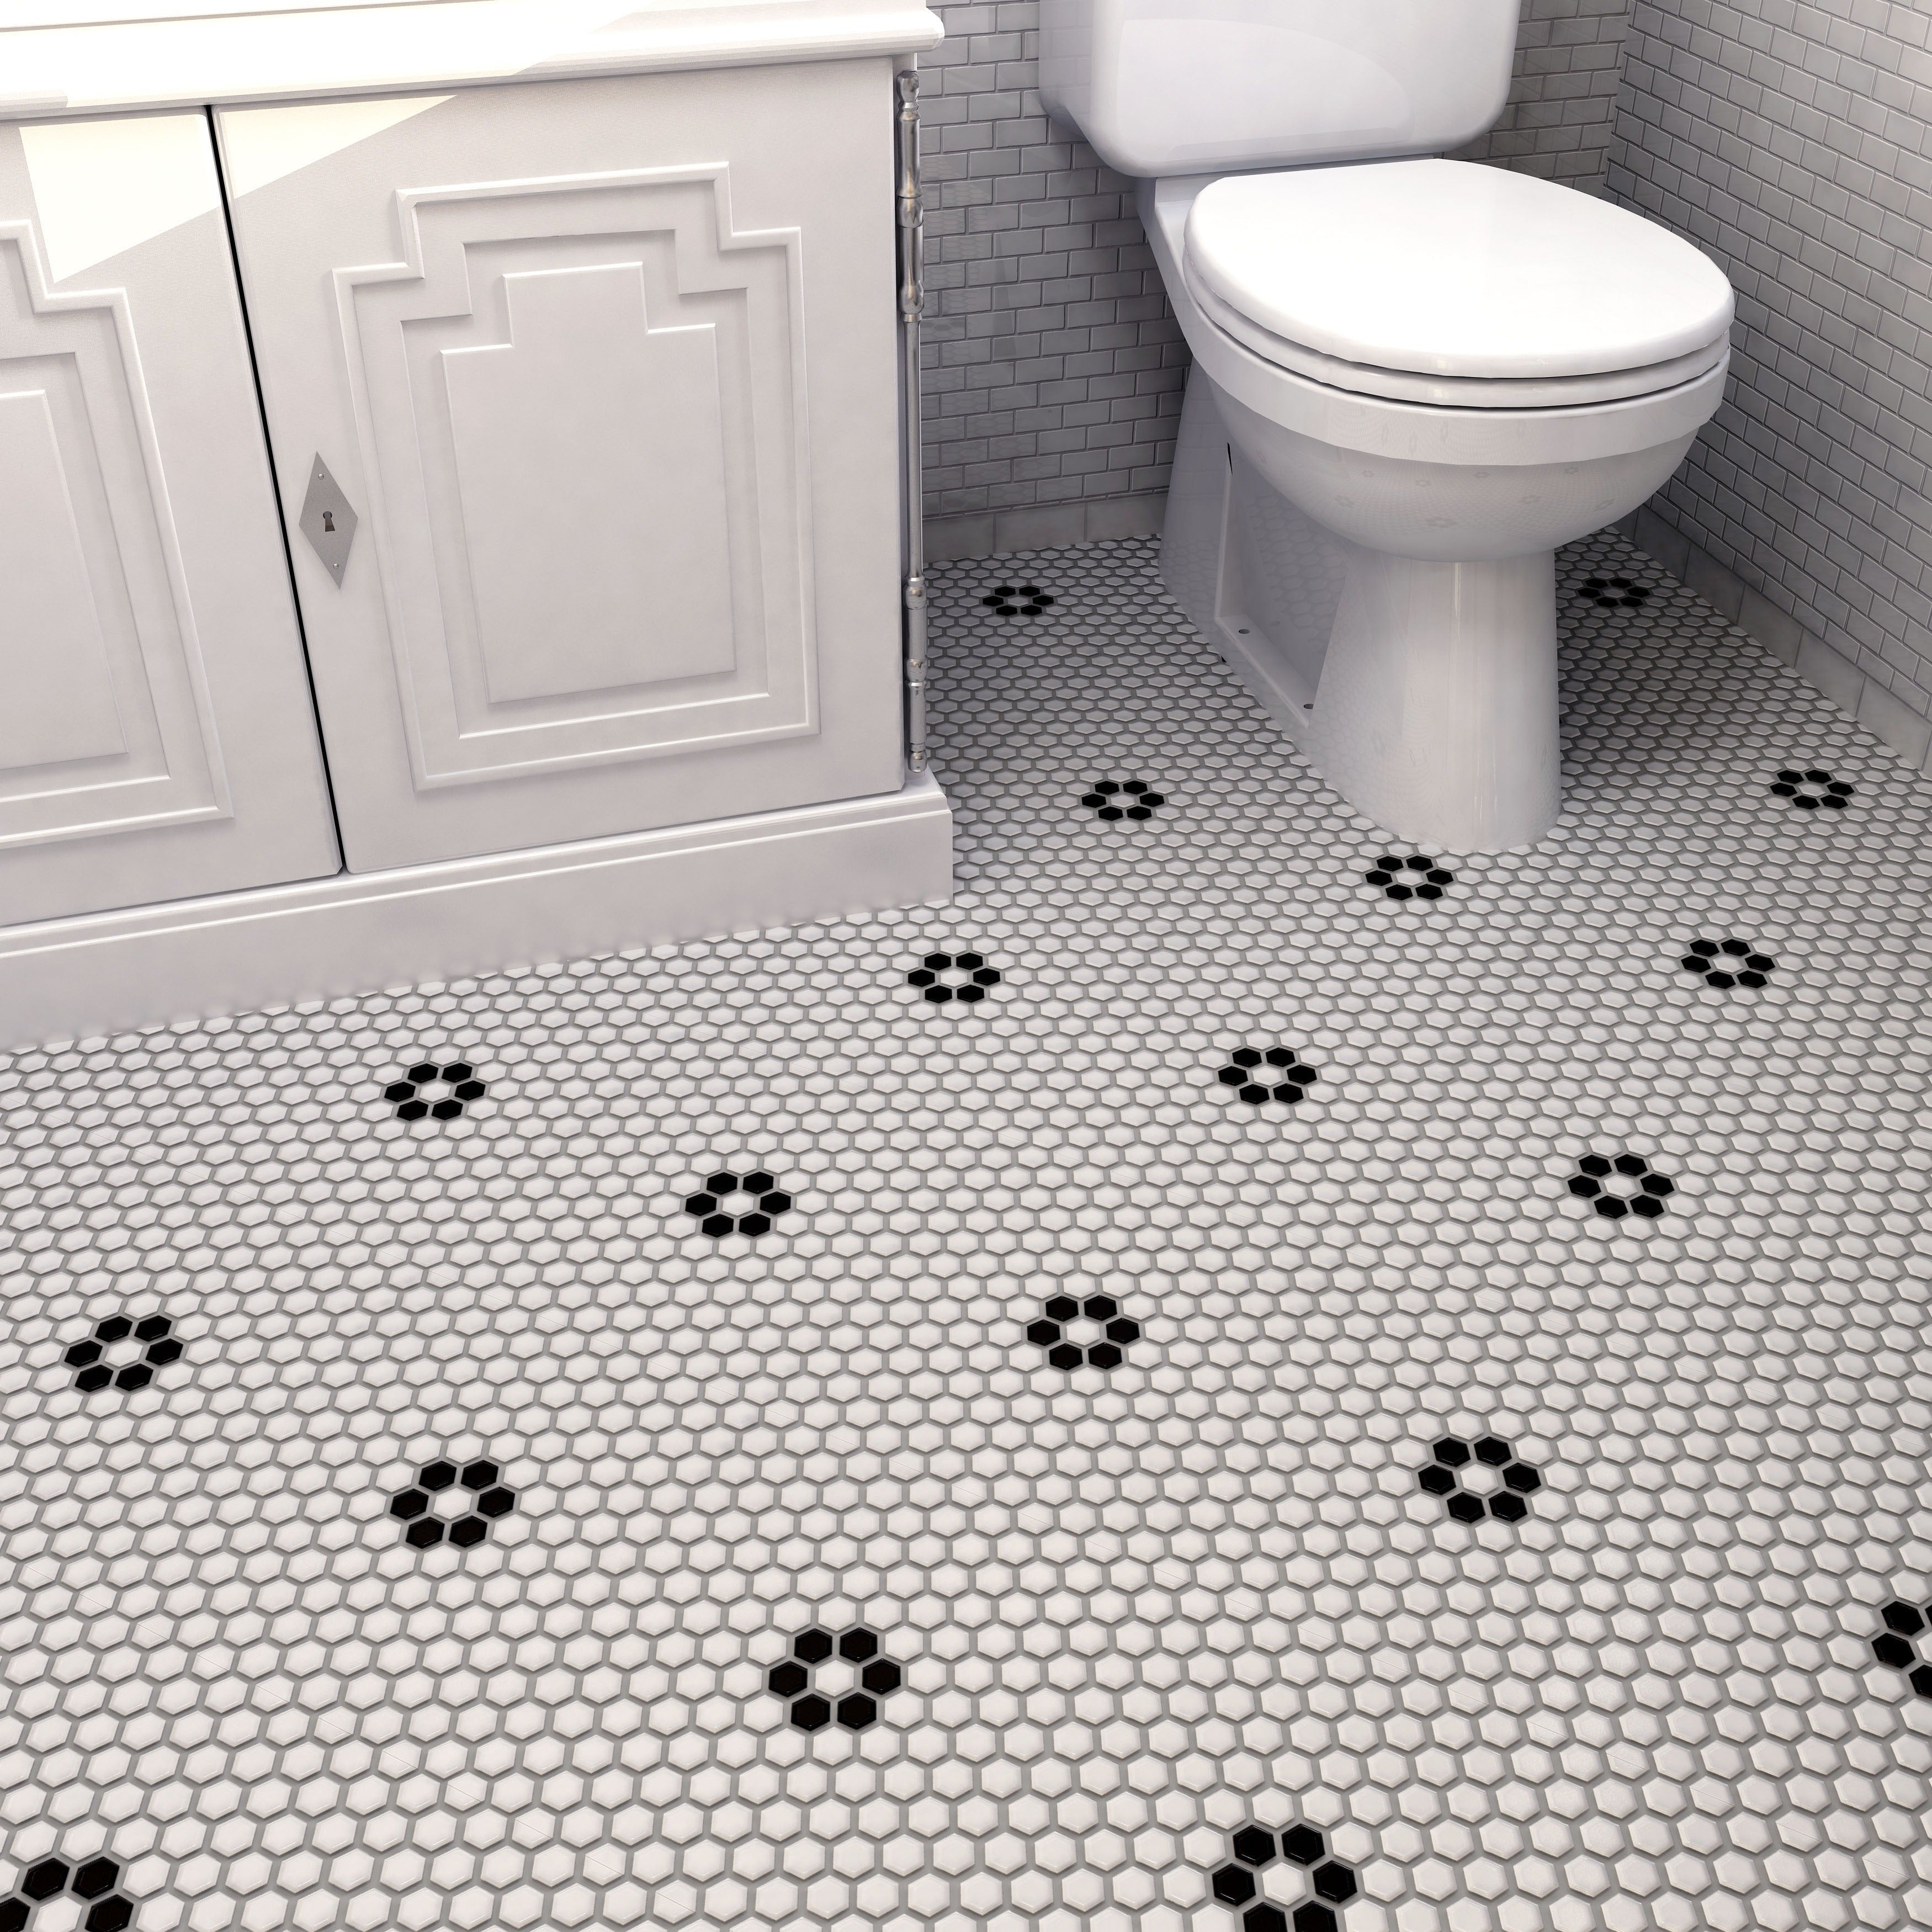 Somertile manhattan hex antique blackwhite unglazed porcelain somertile metro hex matte white and black 1025 inch x 1175 inch flower porcelain dailygadgetfo Images